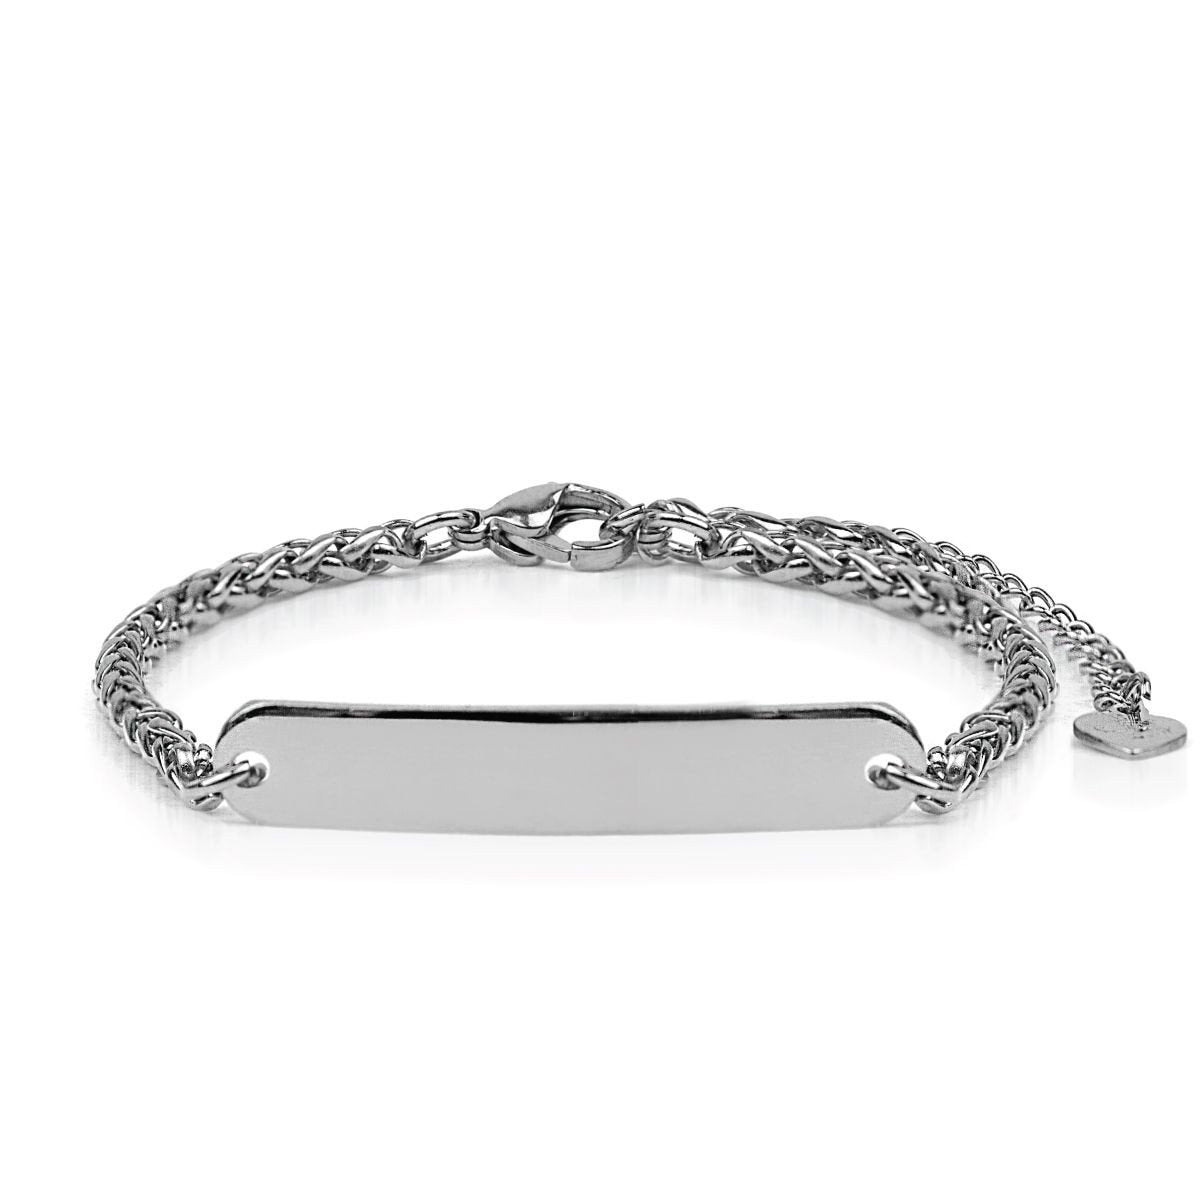 Silver | Custom Engravable | Kindred Spirits Chain Bracelet